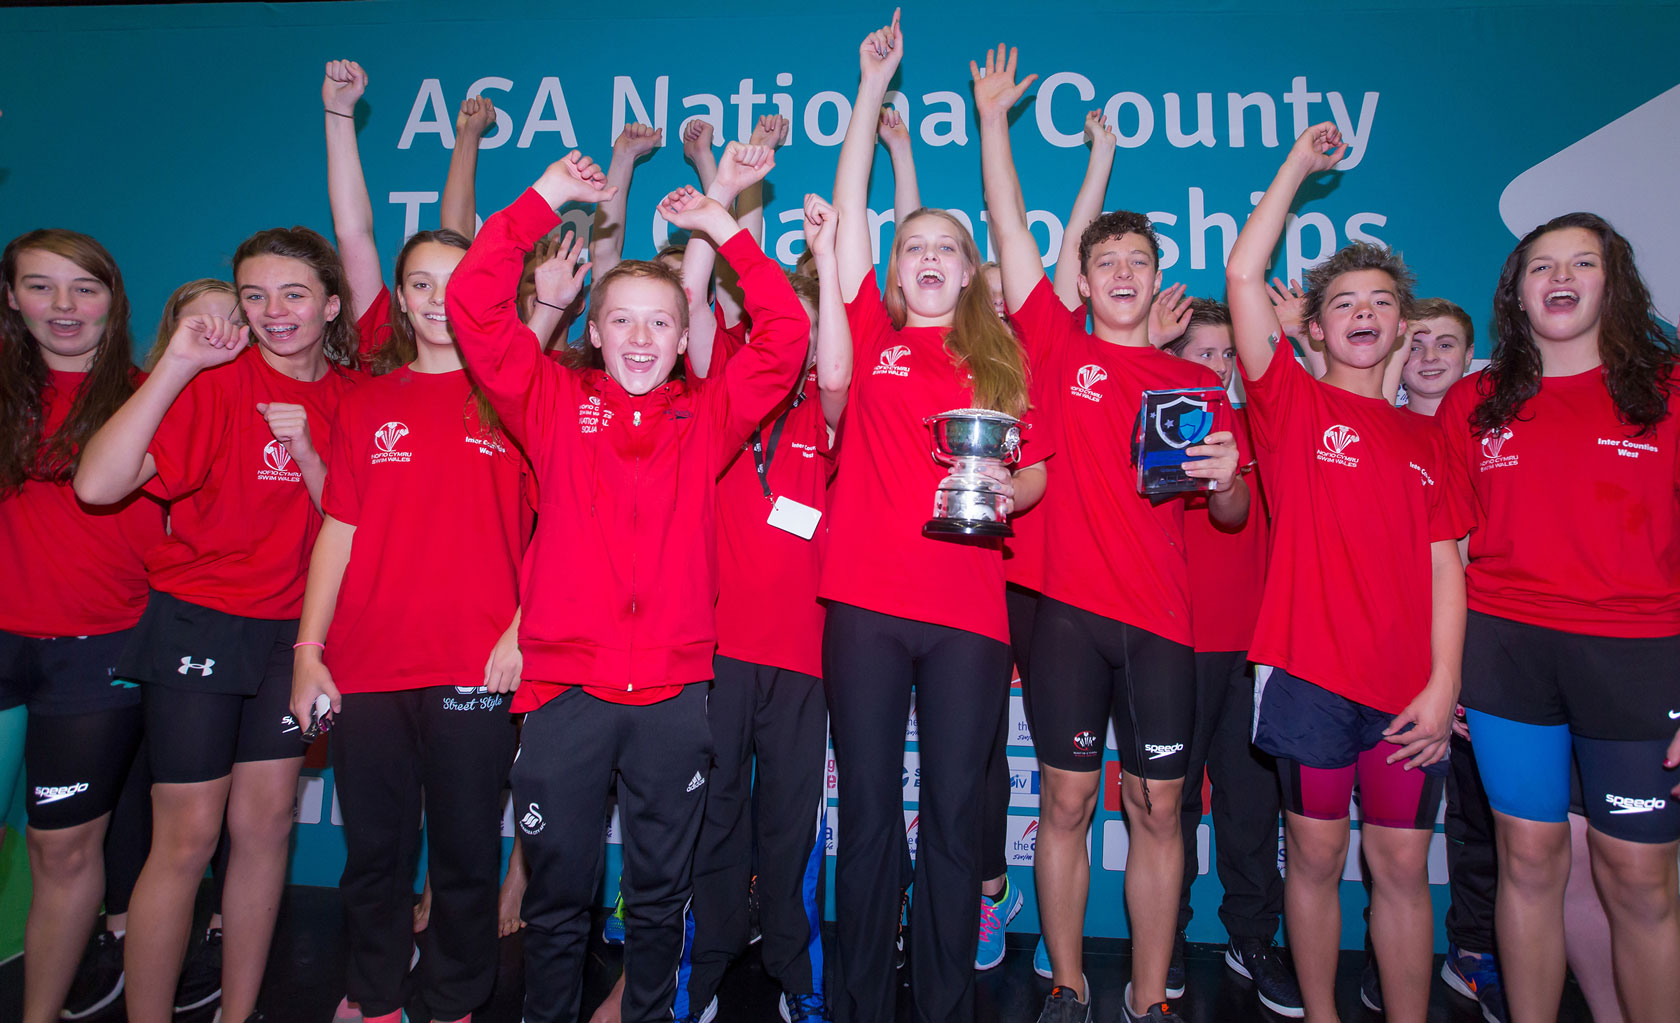 Swim Wales West win Division Two of 2015 ASA National County Team Championships